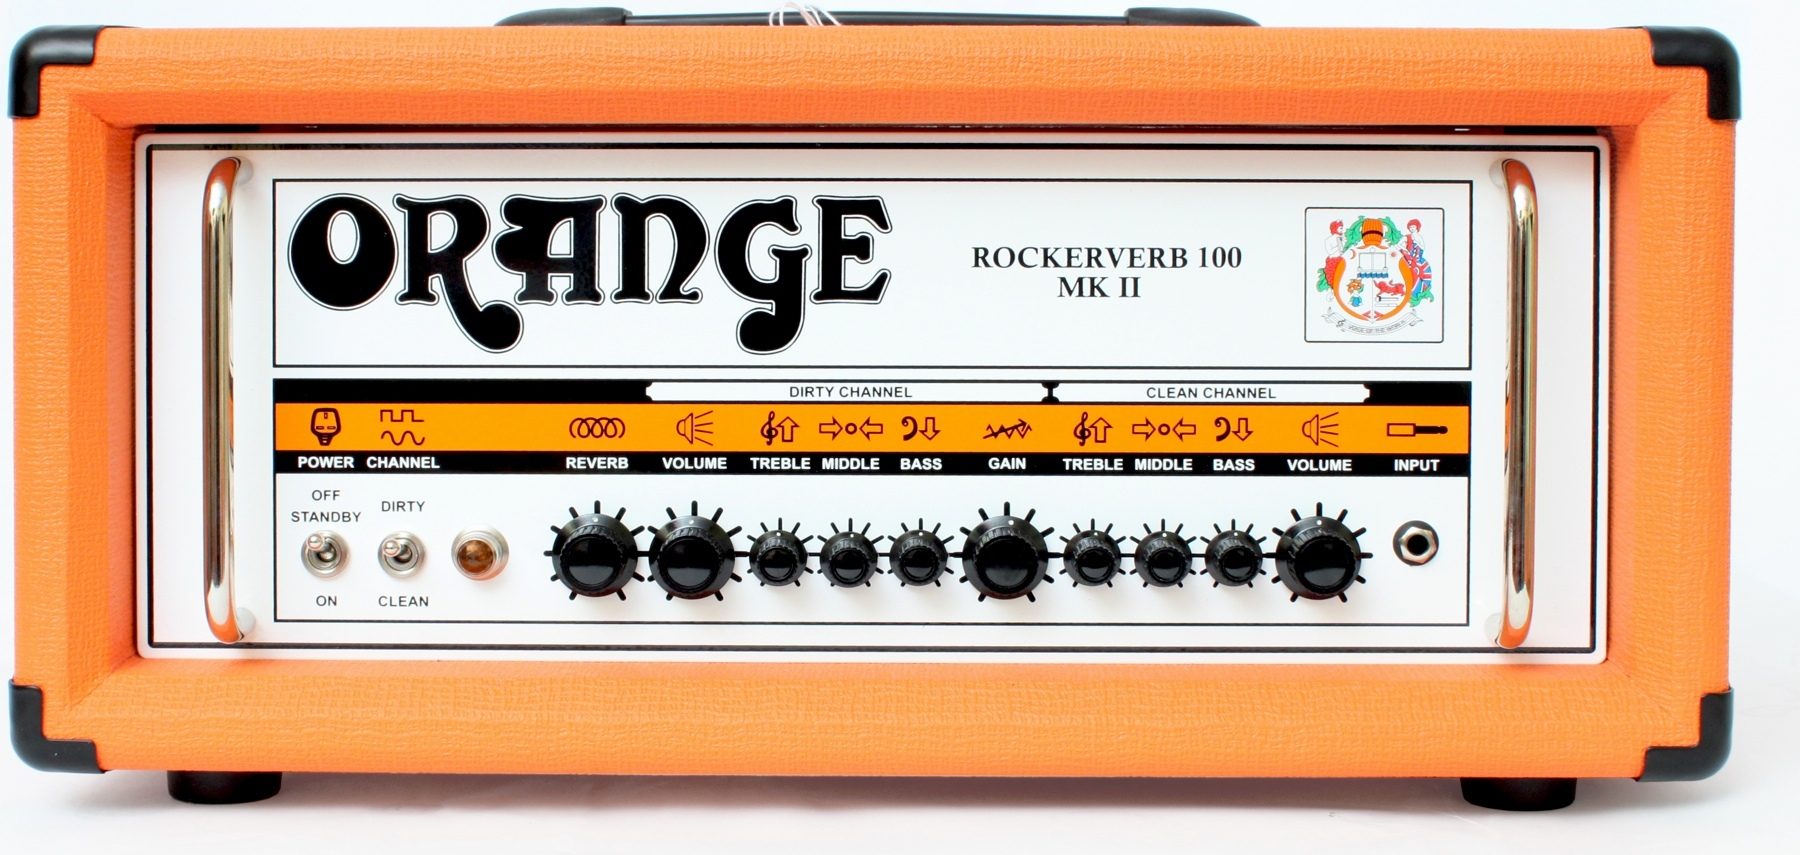 Orange - Rockerverb 100 - MK II